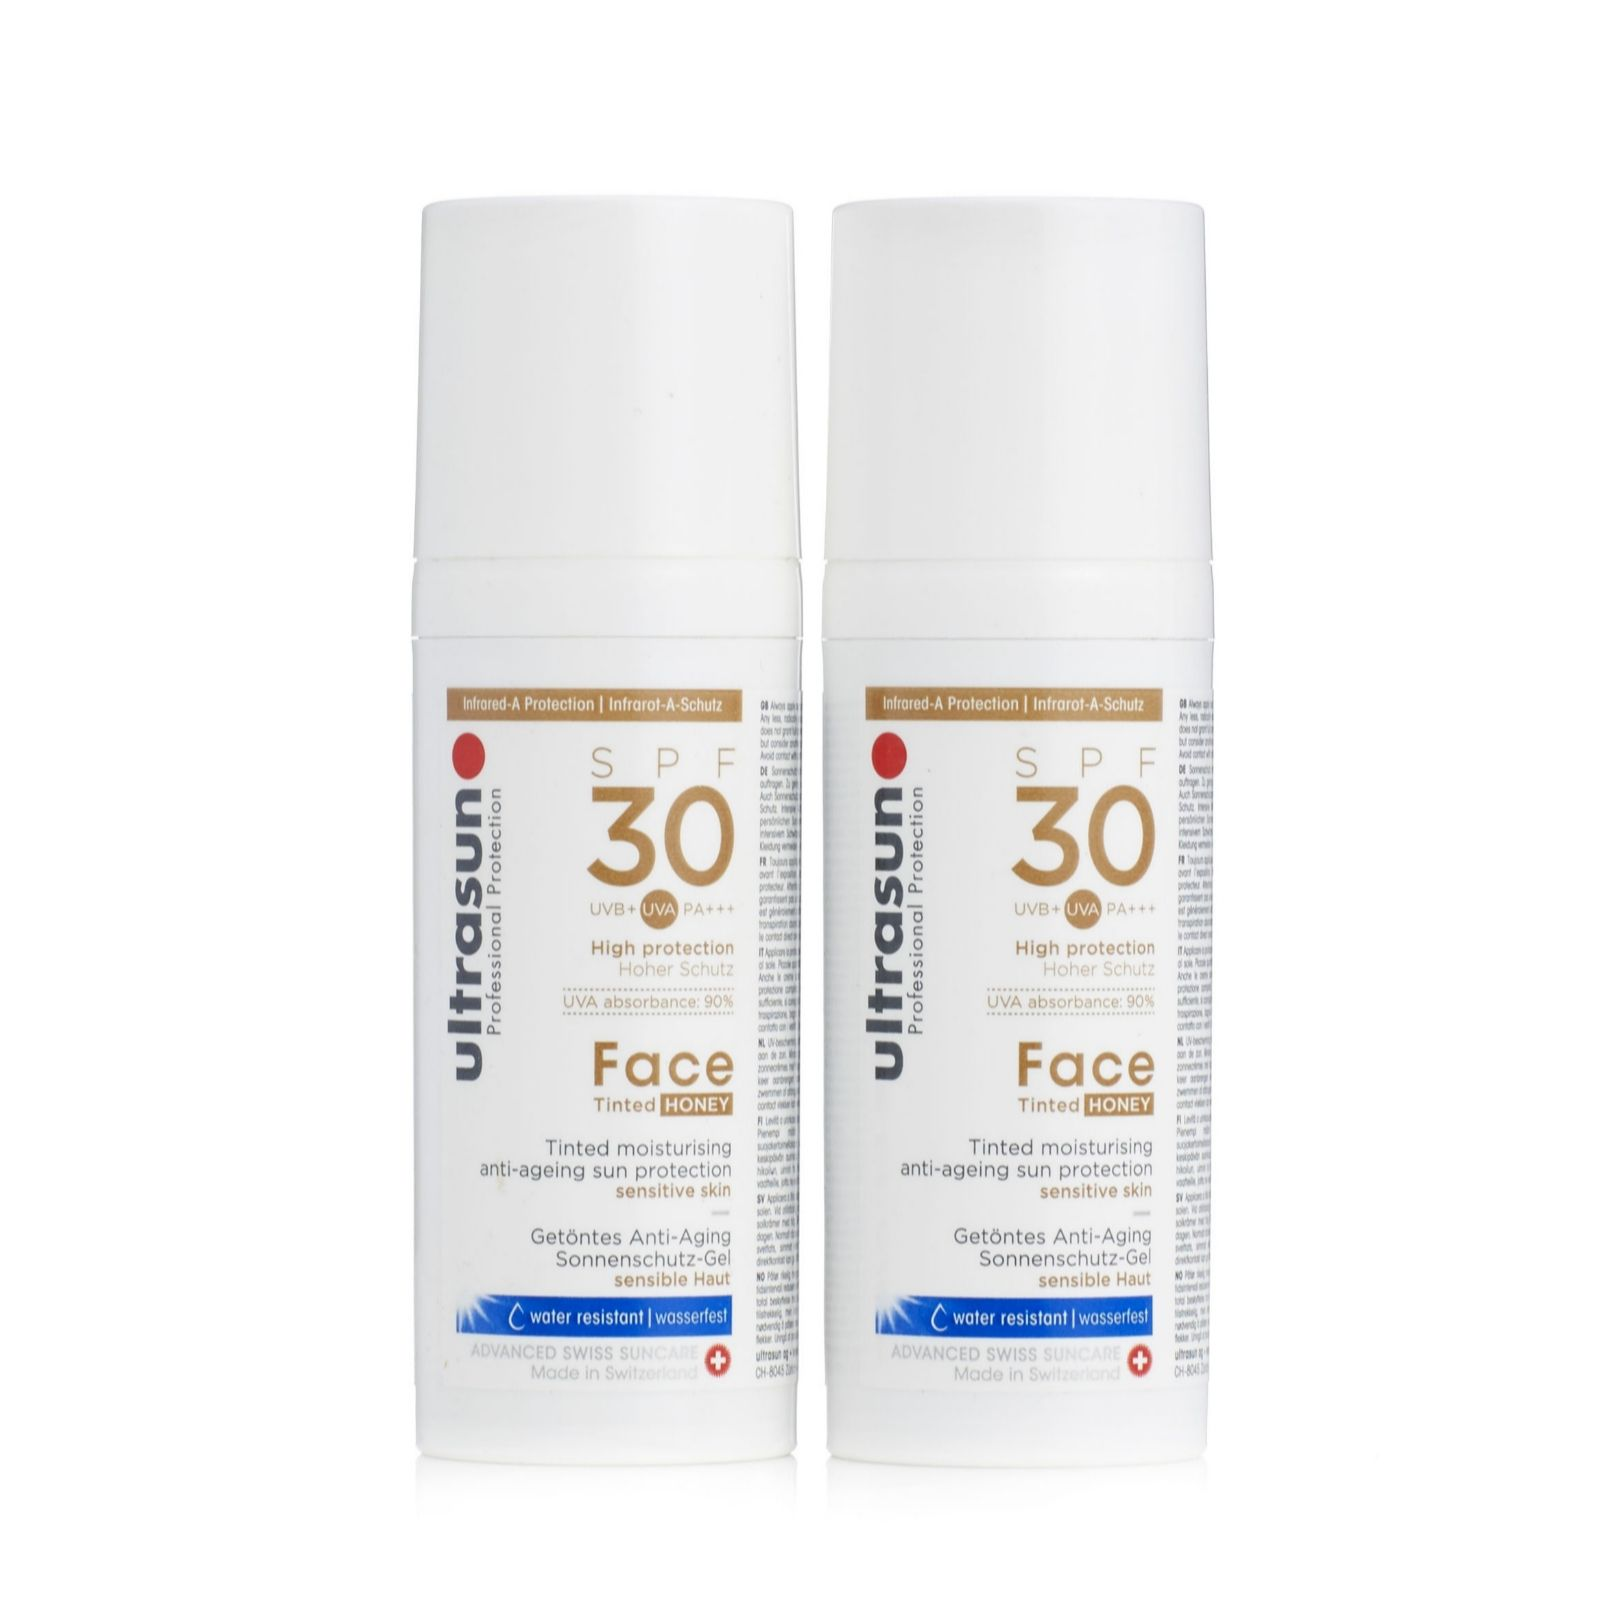 a8fbbf2d11e Ultrasun Sun Protection Tinted Face SPF 30 50ml Duo - Page 1 - QVC UK